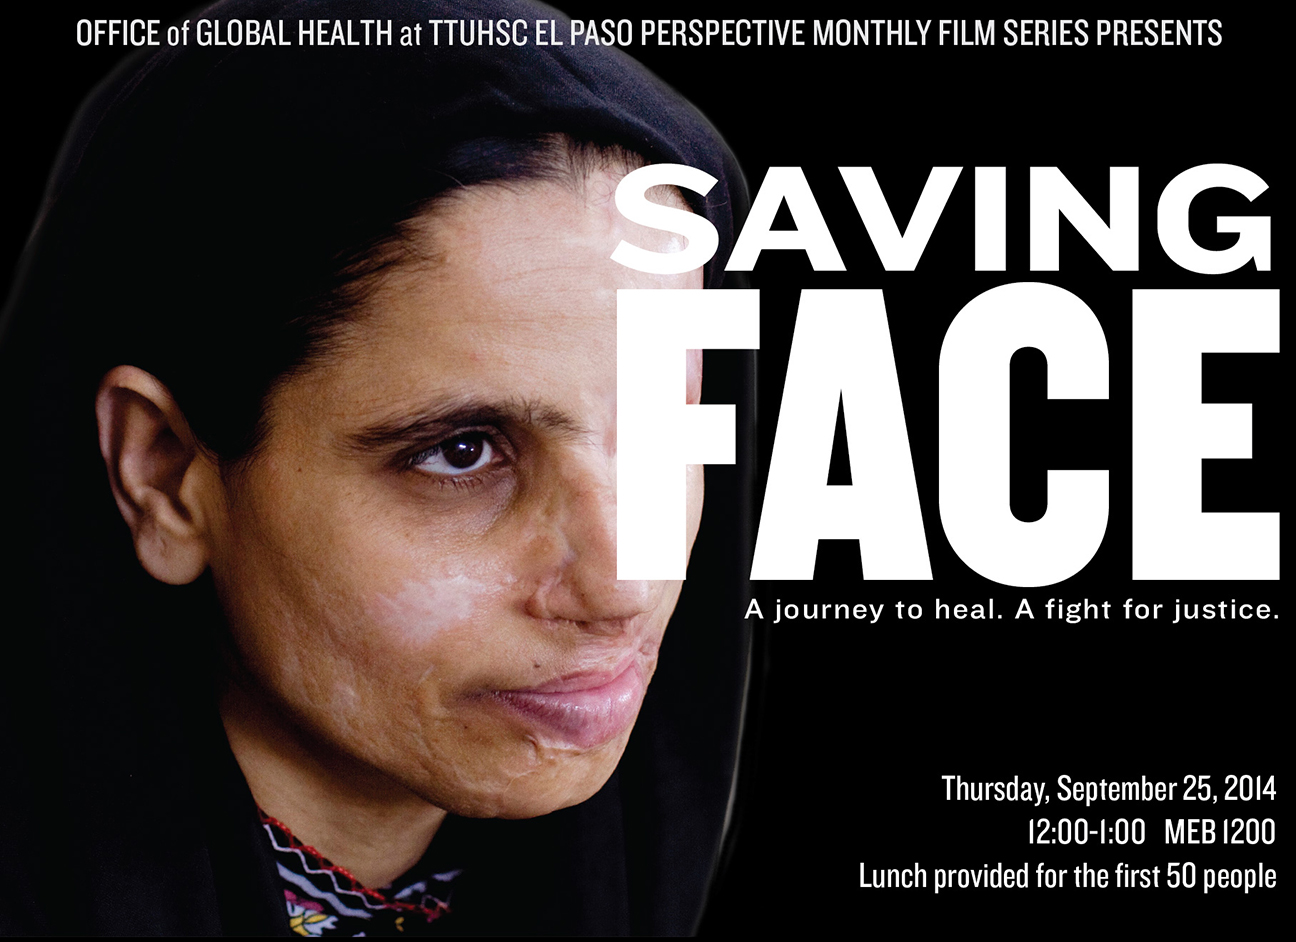 TTUHSC El Paso Office of Global Health Perspective Film Series